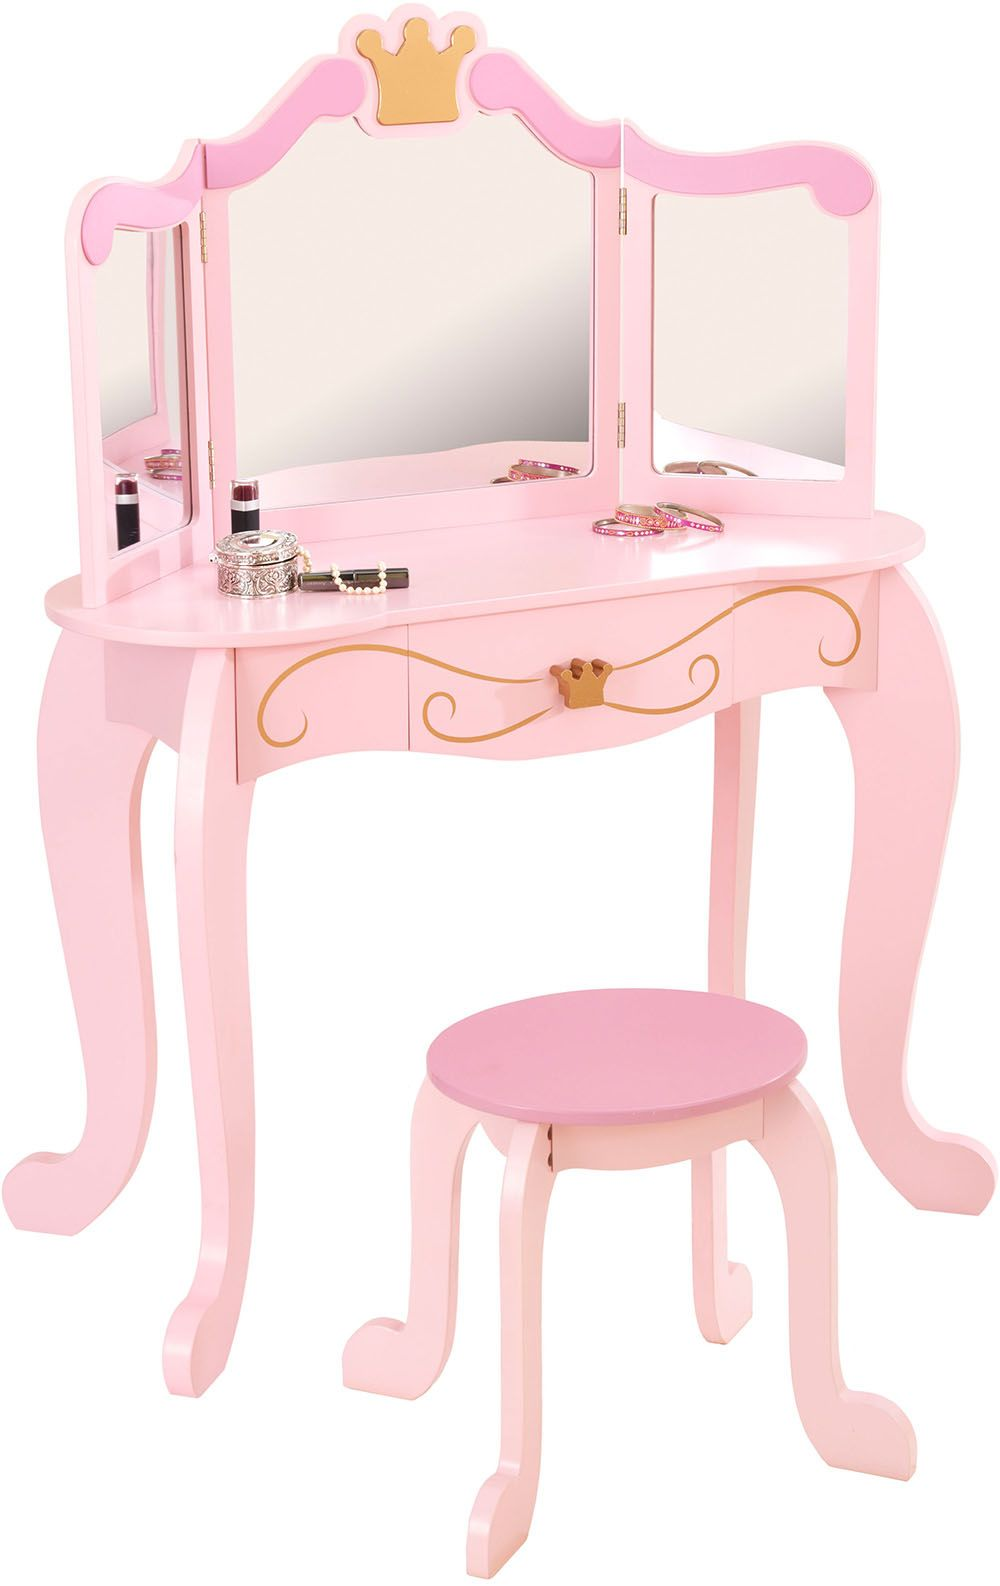 coiffeuse en bois et tabouret rose pour enfant princesse. Black Bedroom Furniture Sets. Home Design Ideas